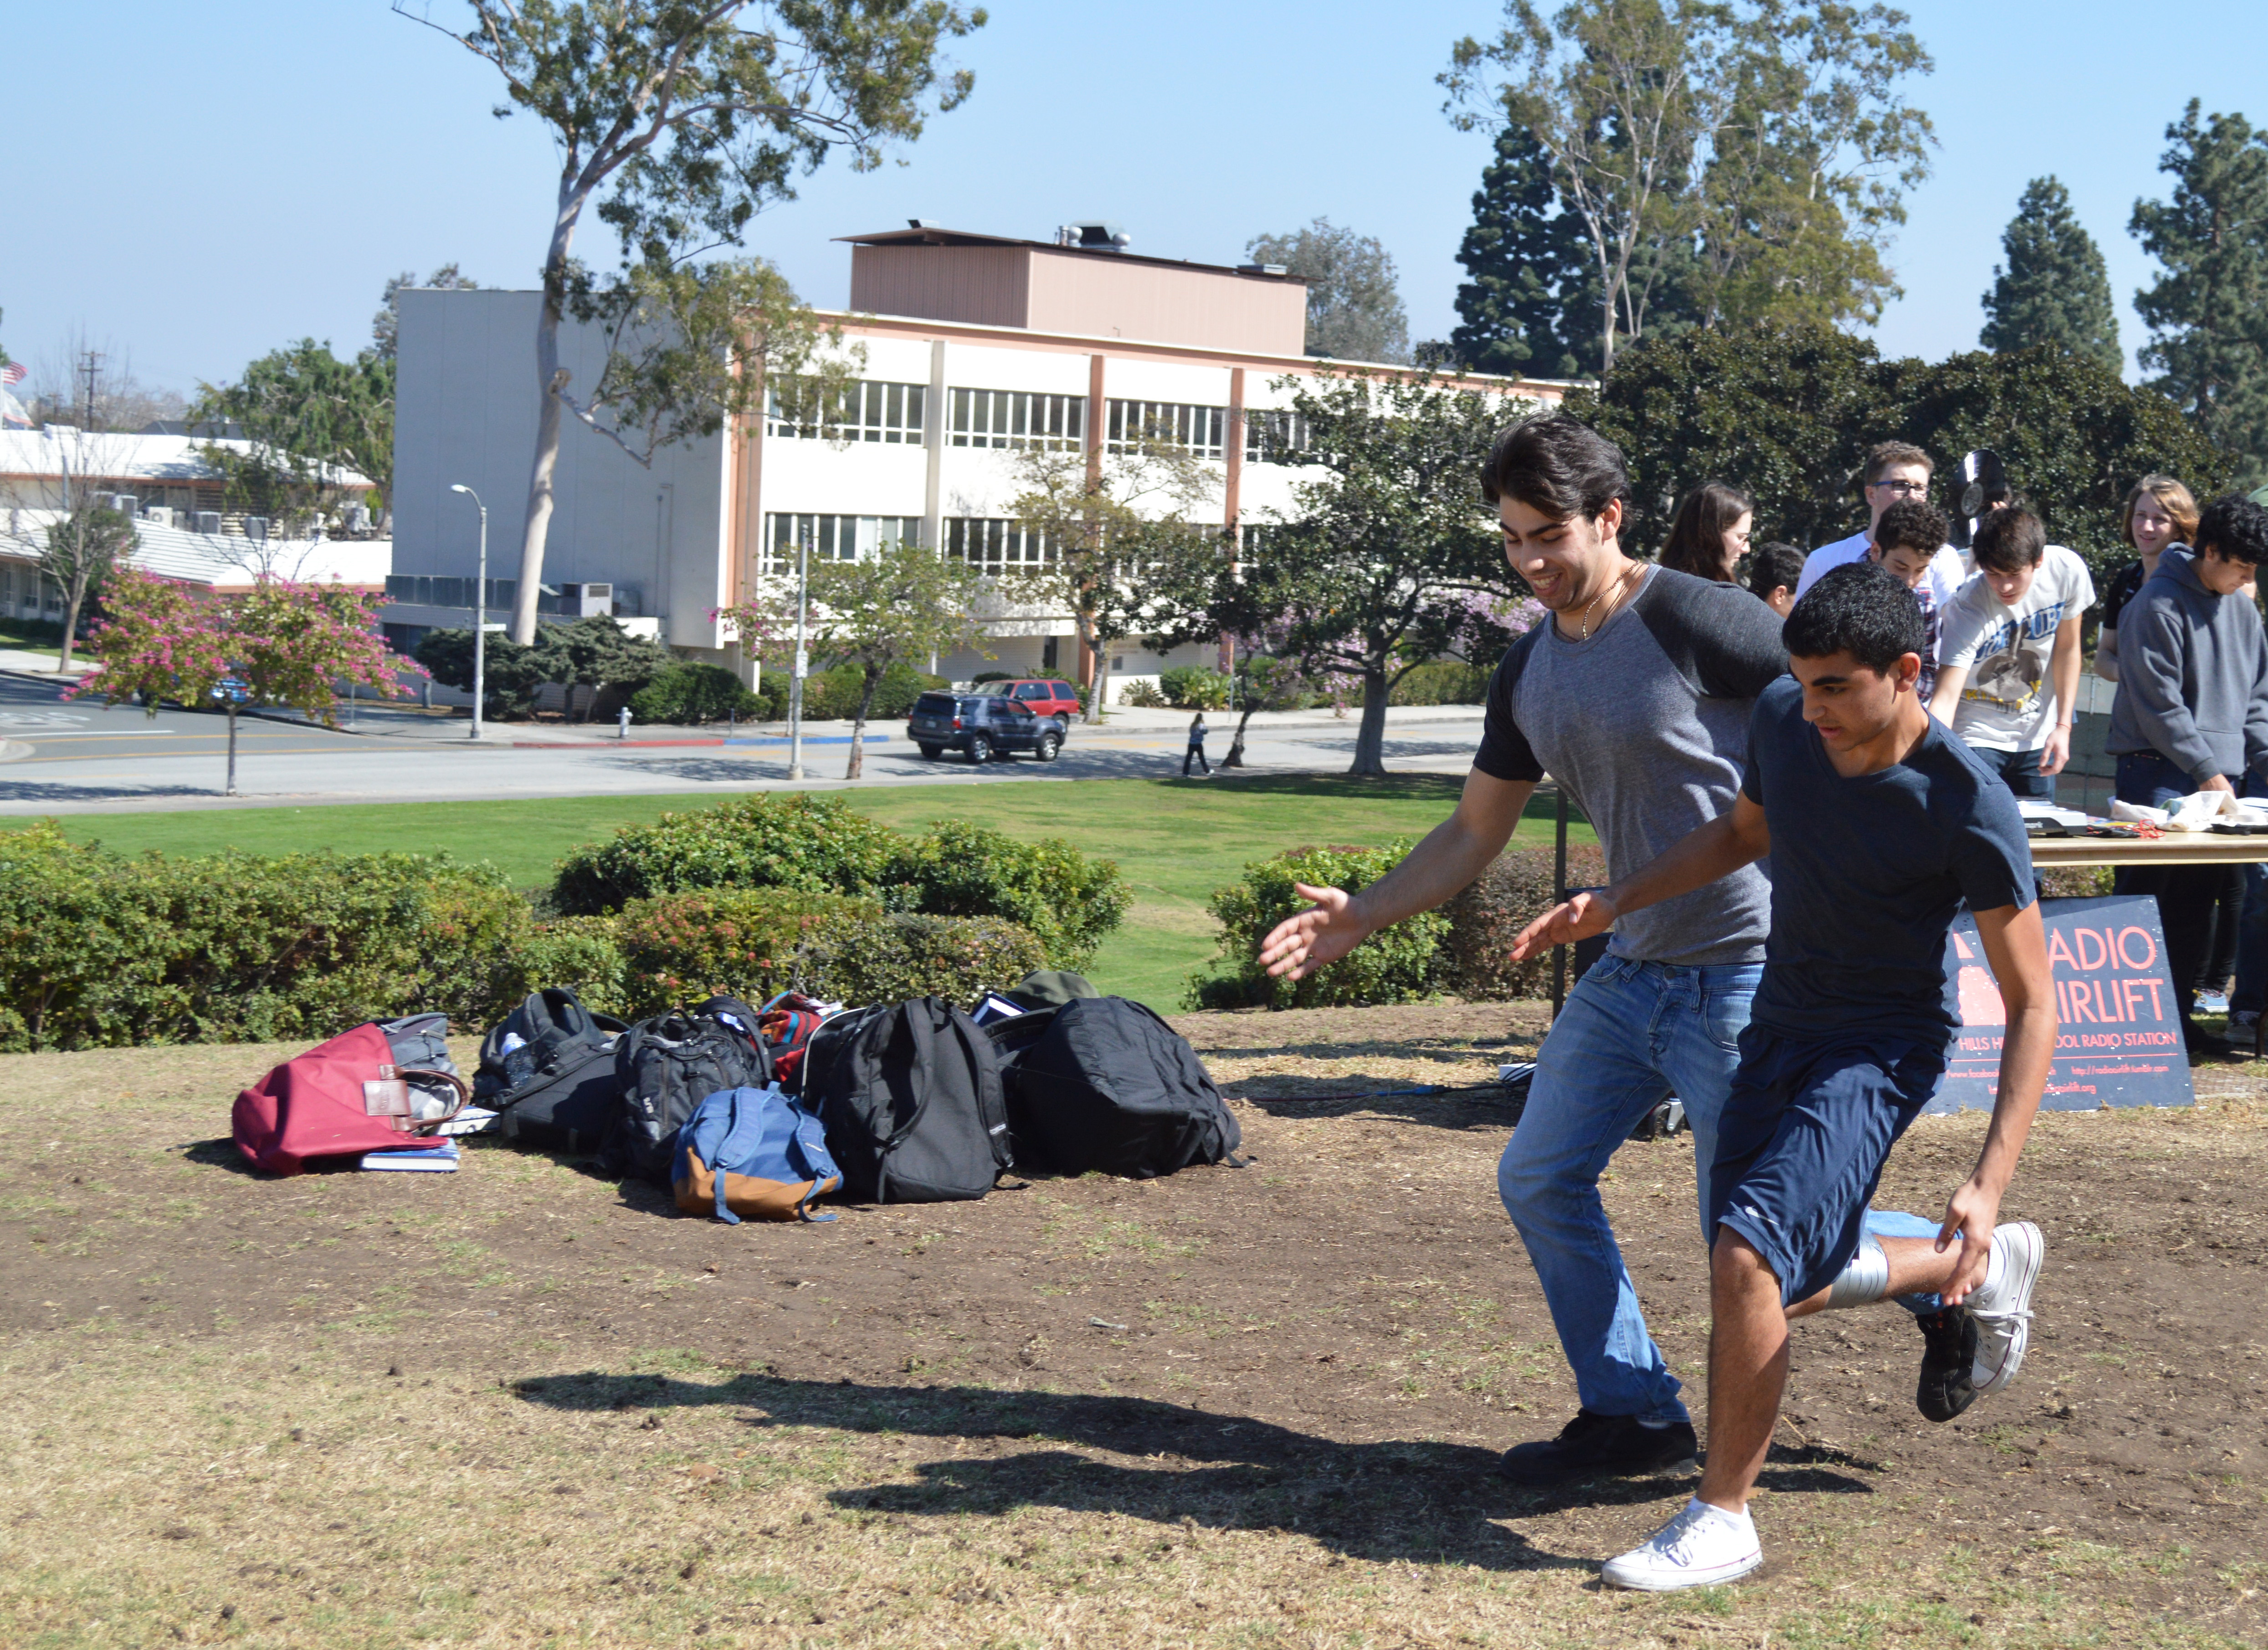 A pair of juniors race to the finish line of the three-legged race, coming in second place.